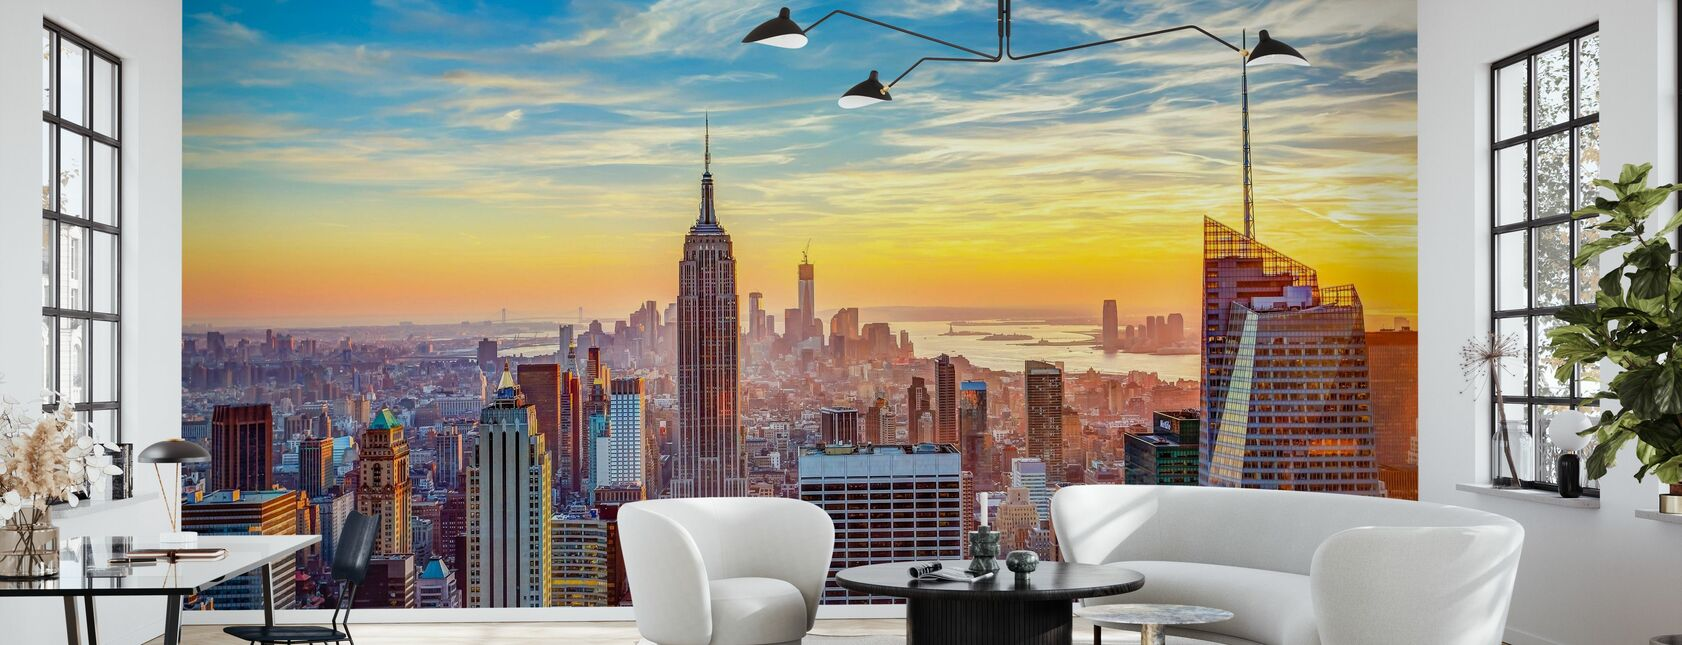 Aerial View of City - Wallpaper - Living Room